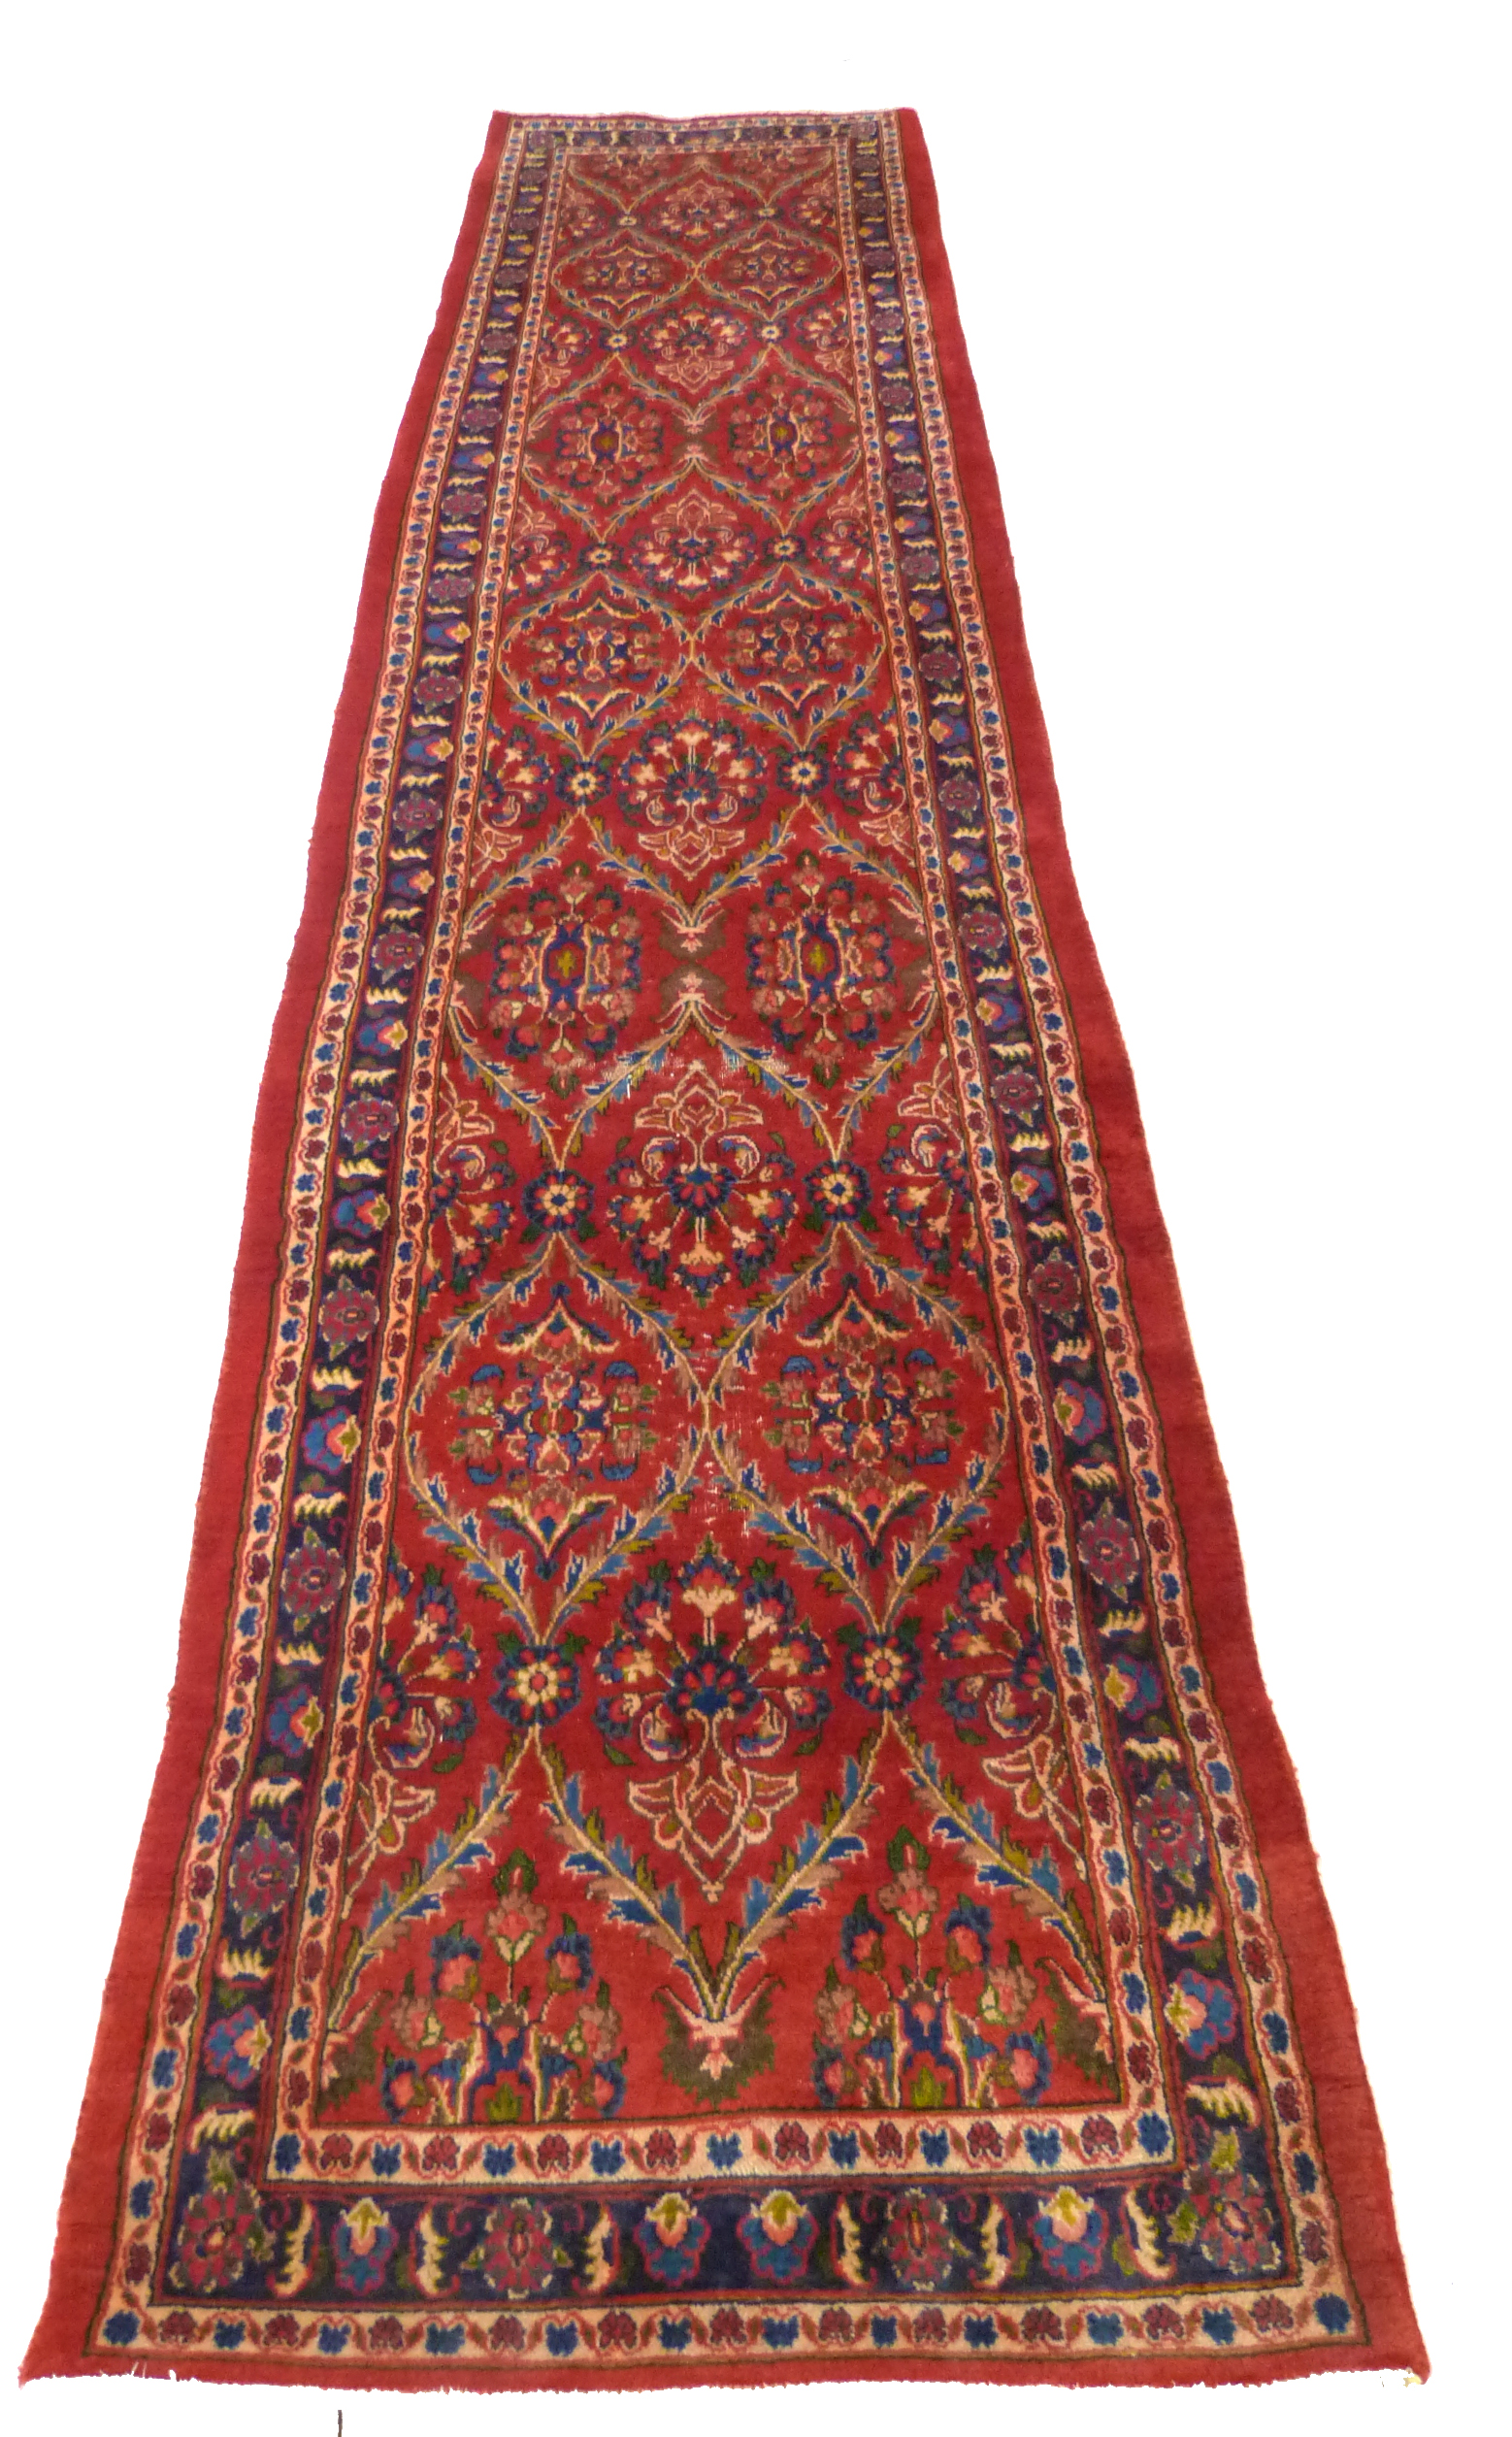 Large red ground Persian Kashan Runner, with all-over floral pattern 397cm x 93cm approximately No